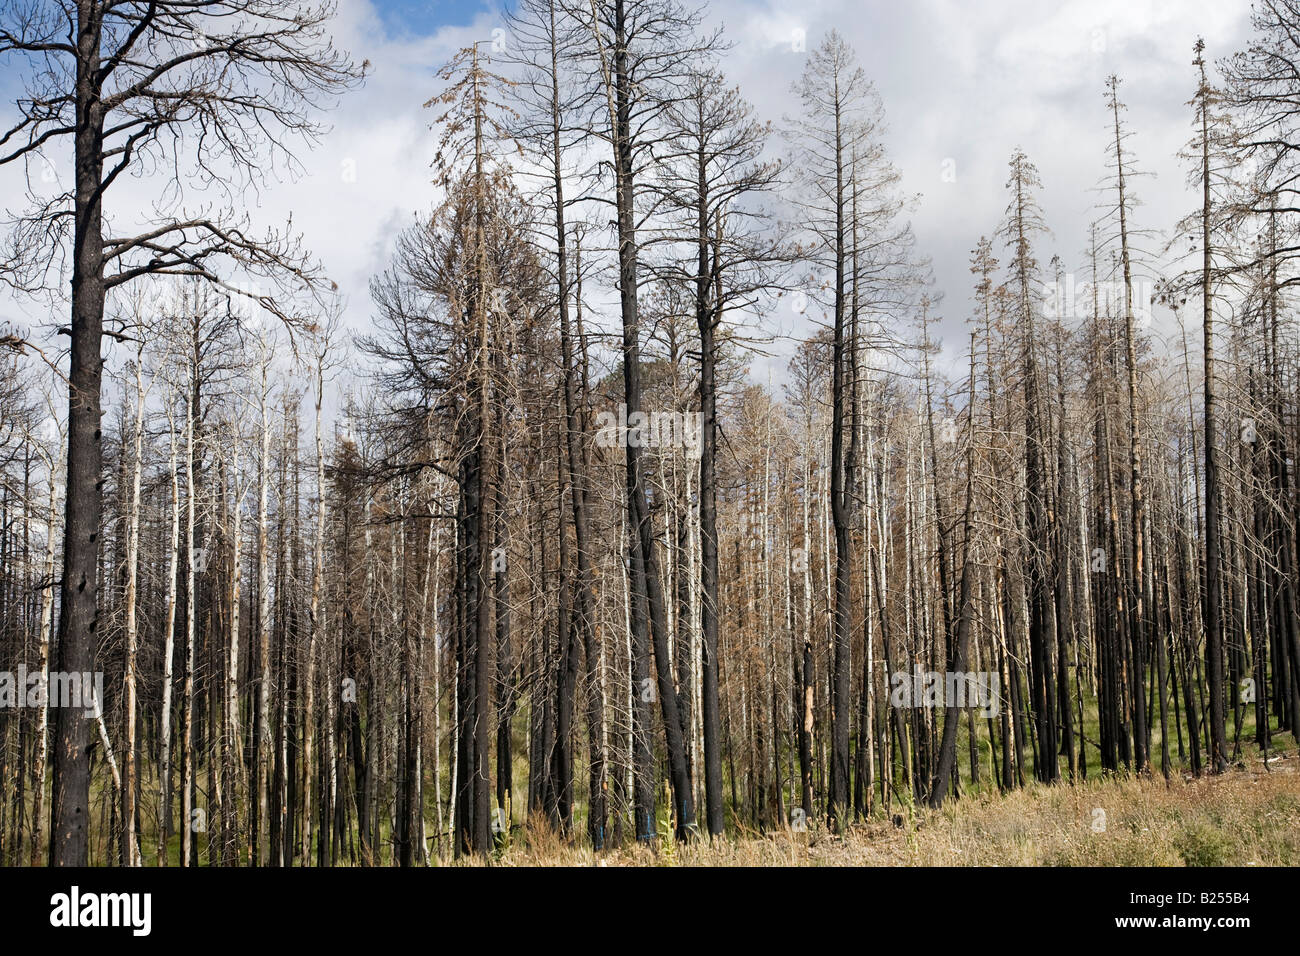 After Forest Fire - Kaibab National Forest Arizona USA - Stock Image